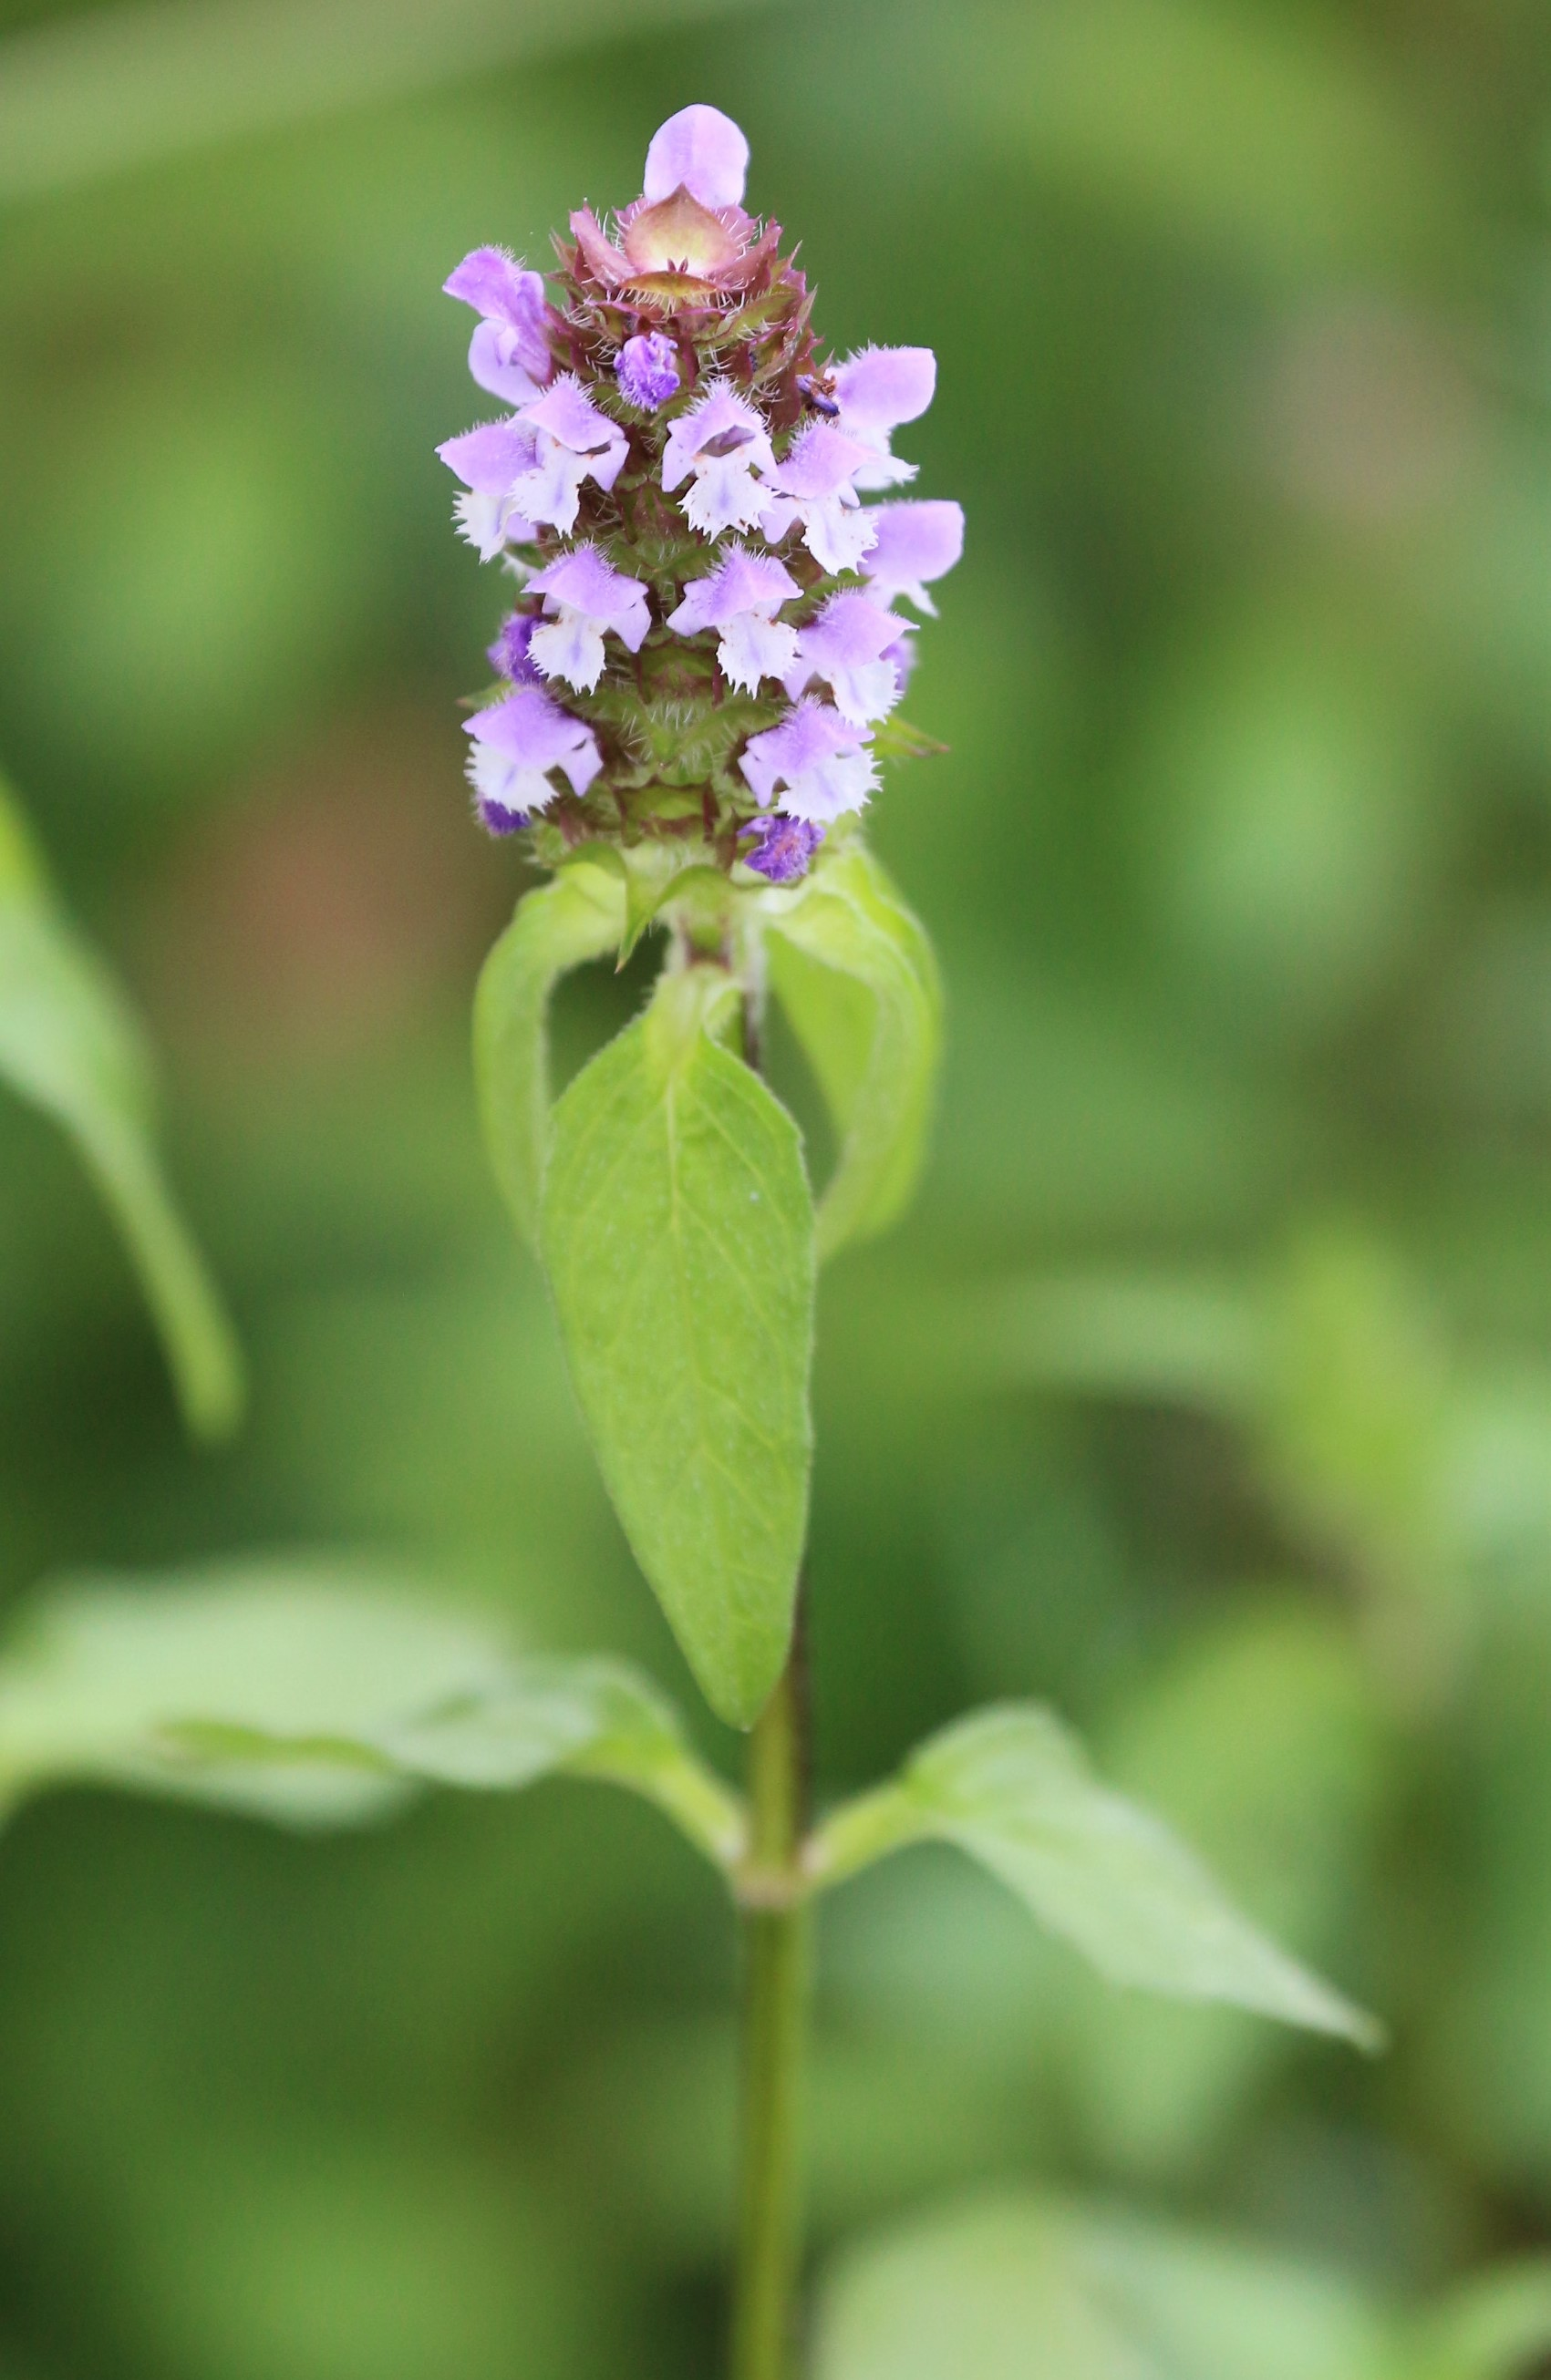 Prunella vulgaris.